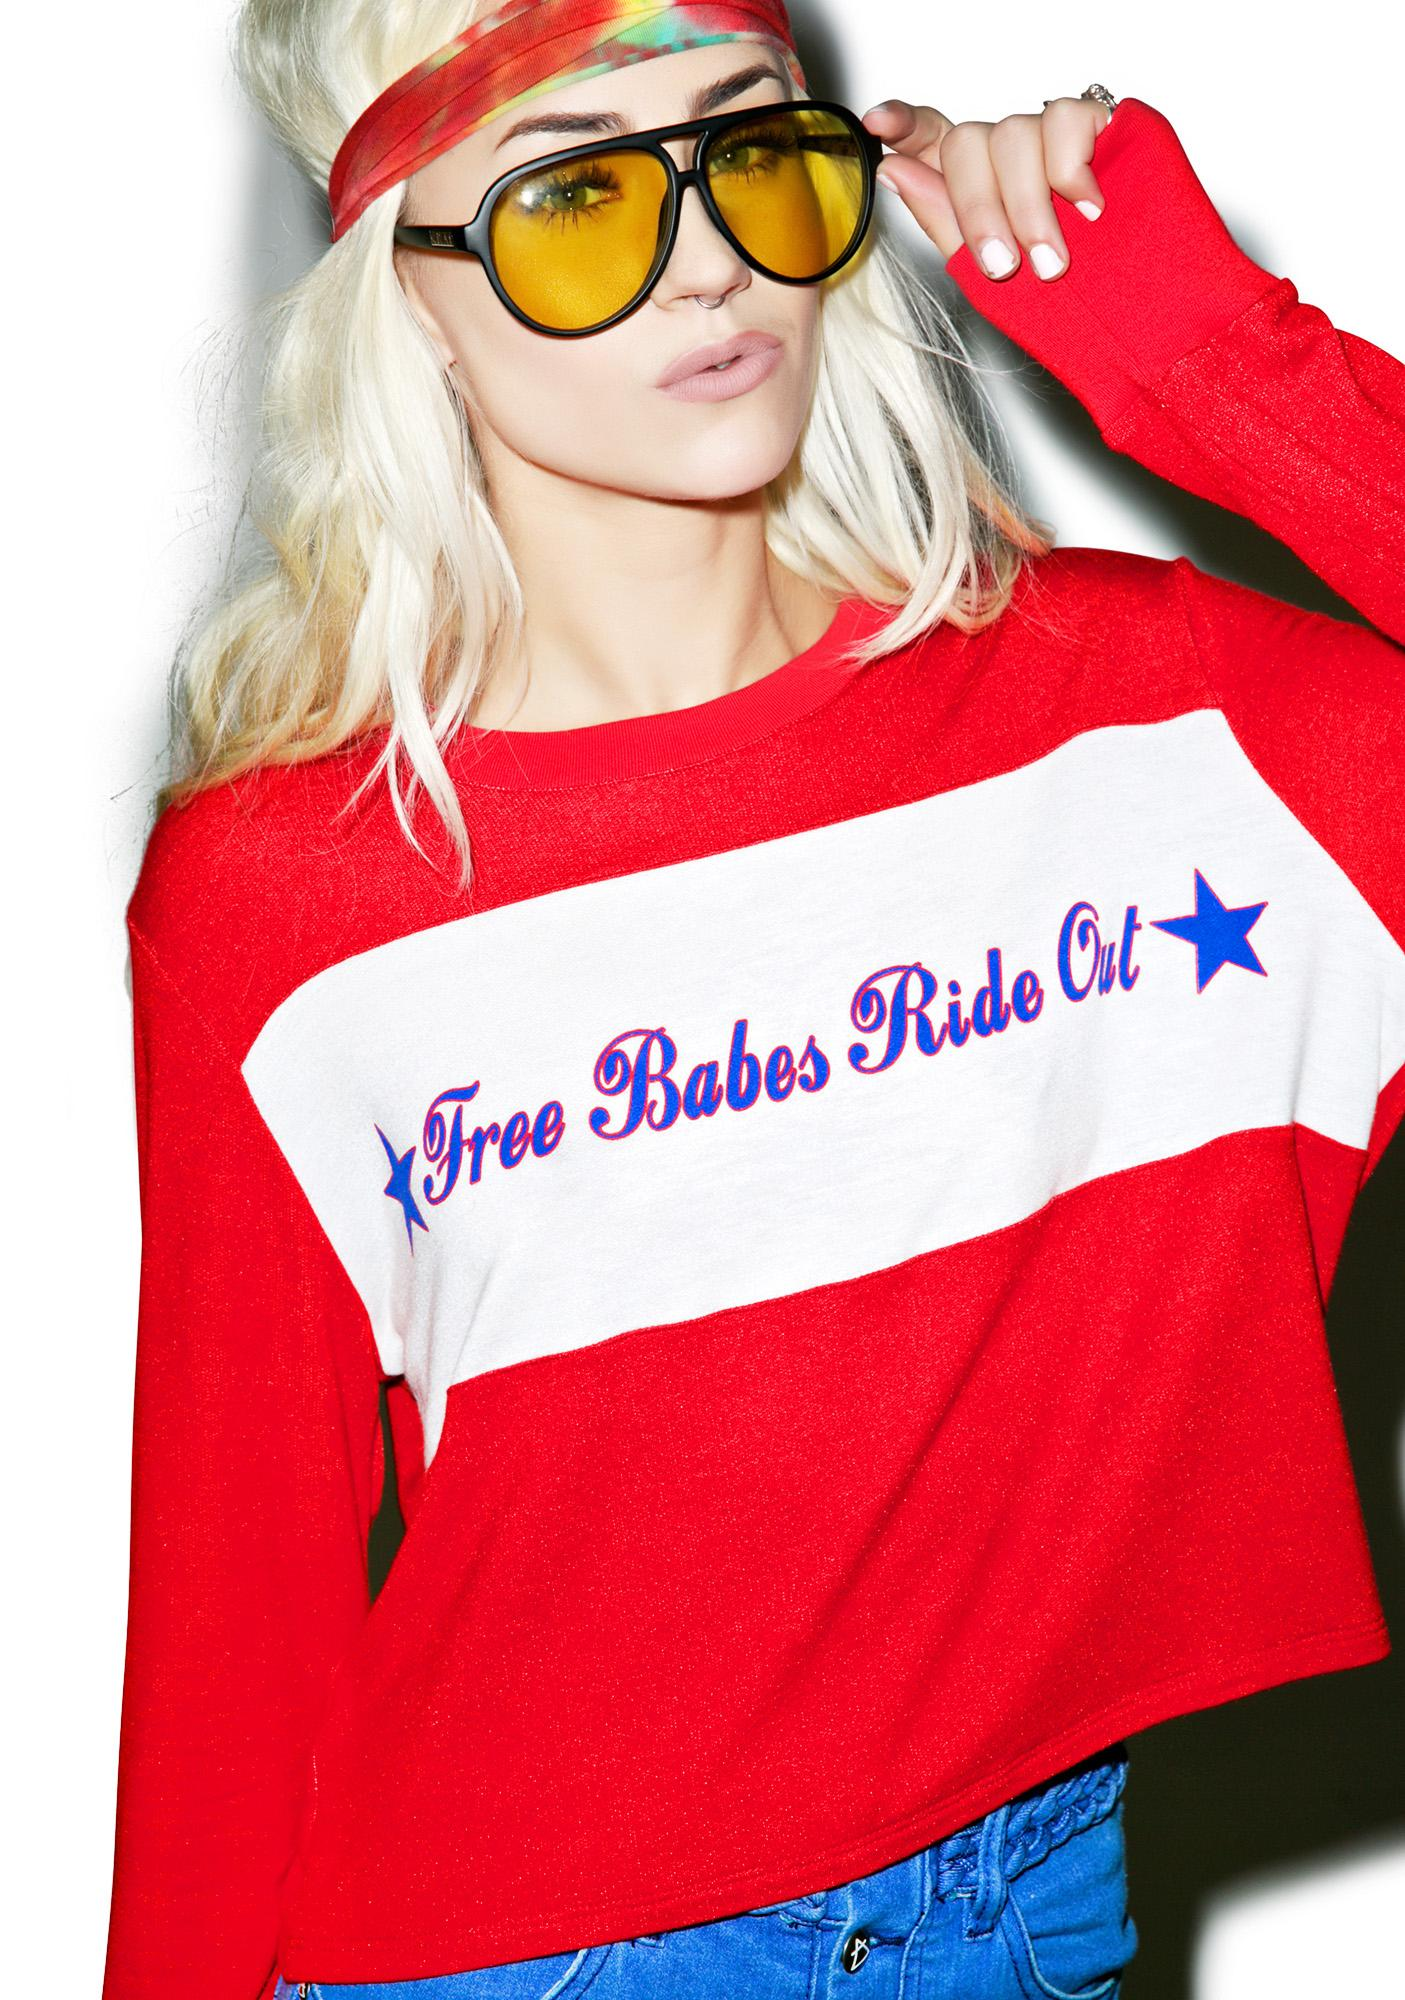 Free Babes Ride Out Long Sleeve